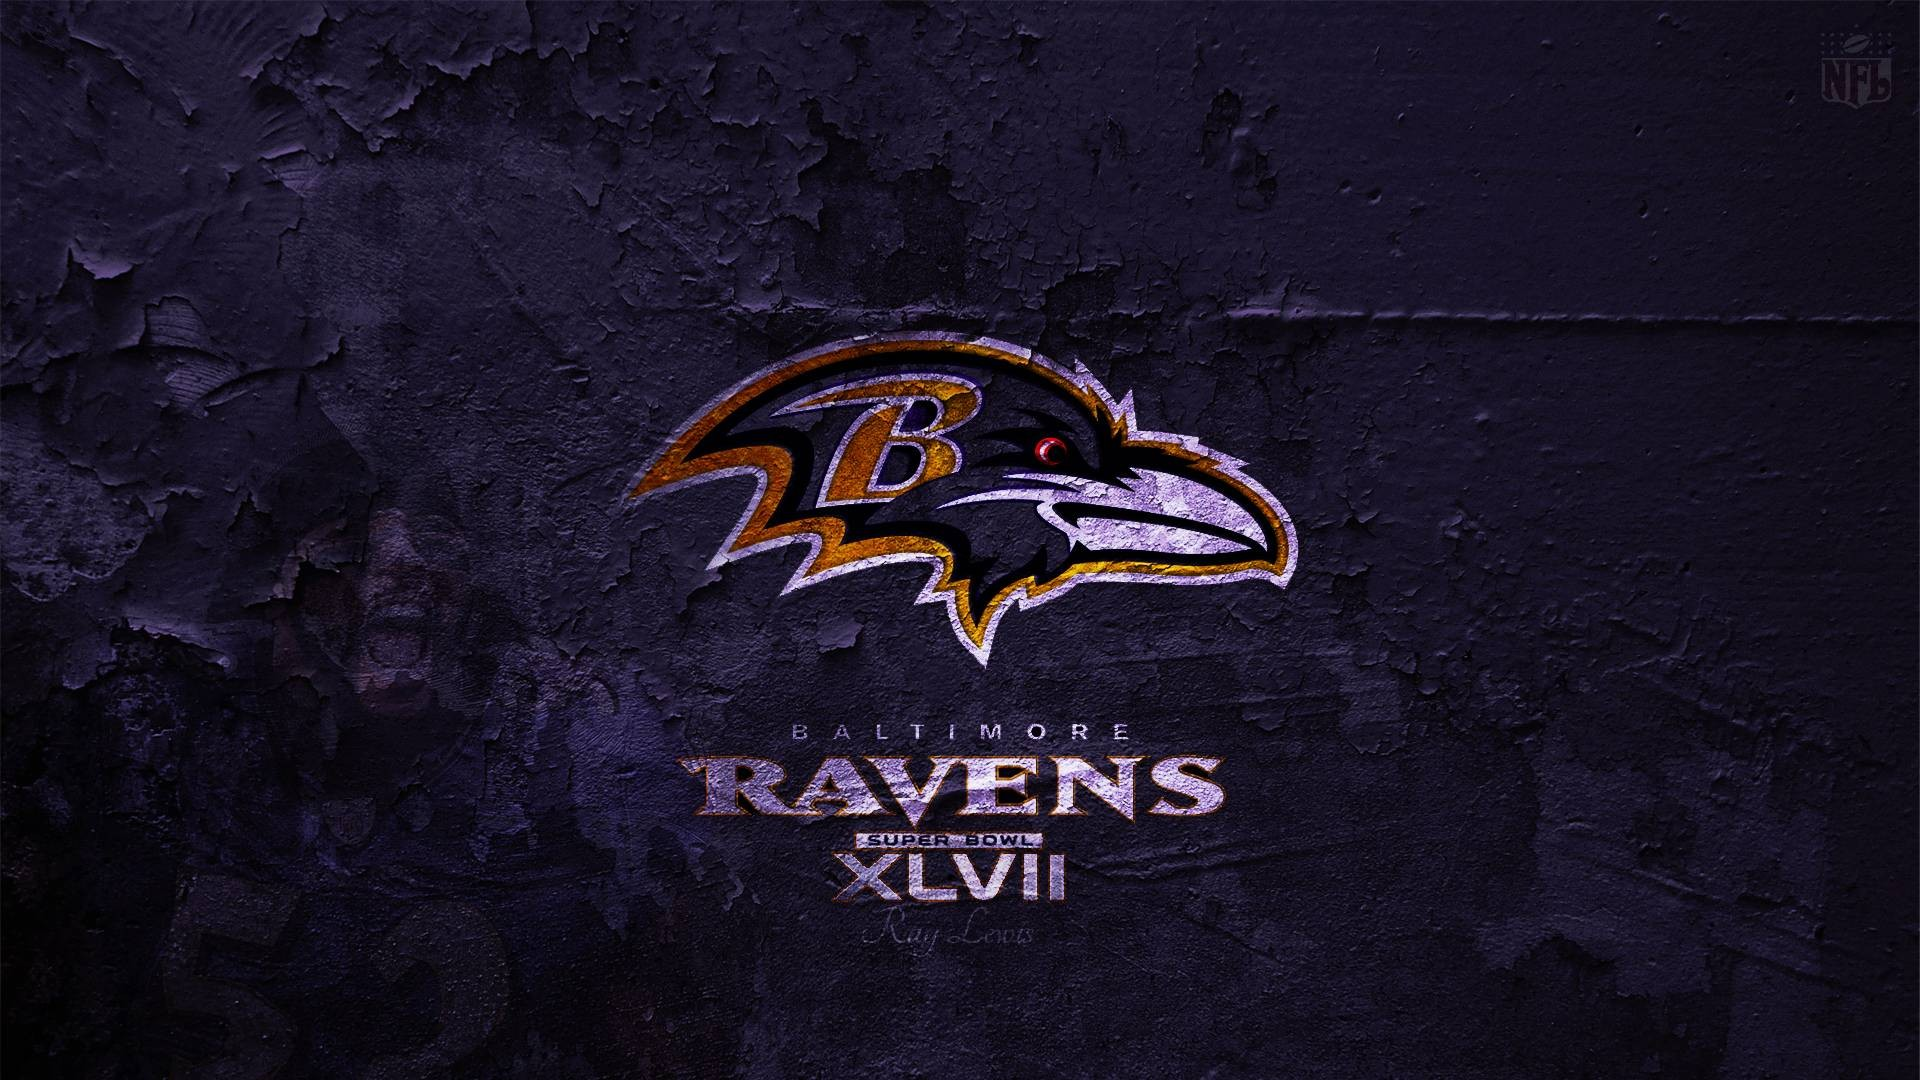 HD Baltimore Ravens Wallpapers 2020 NFL Football Wallpapers 1920x1080